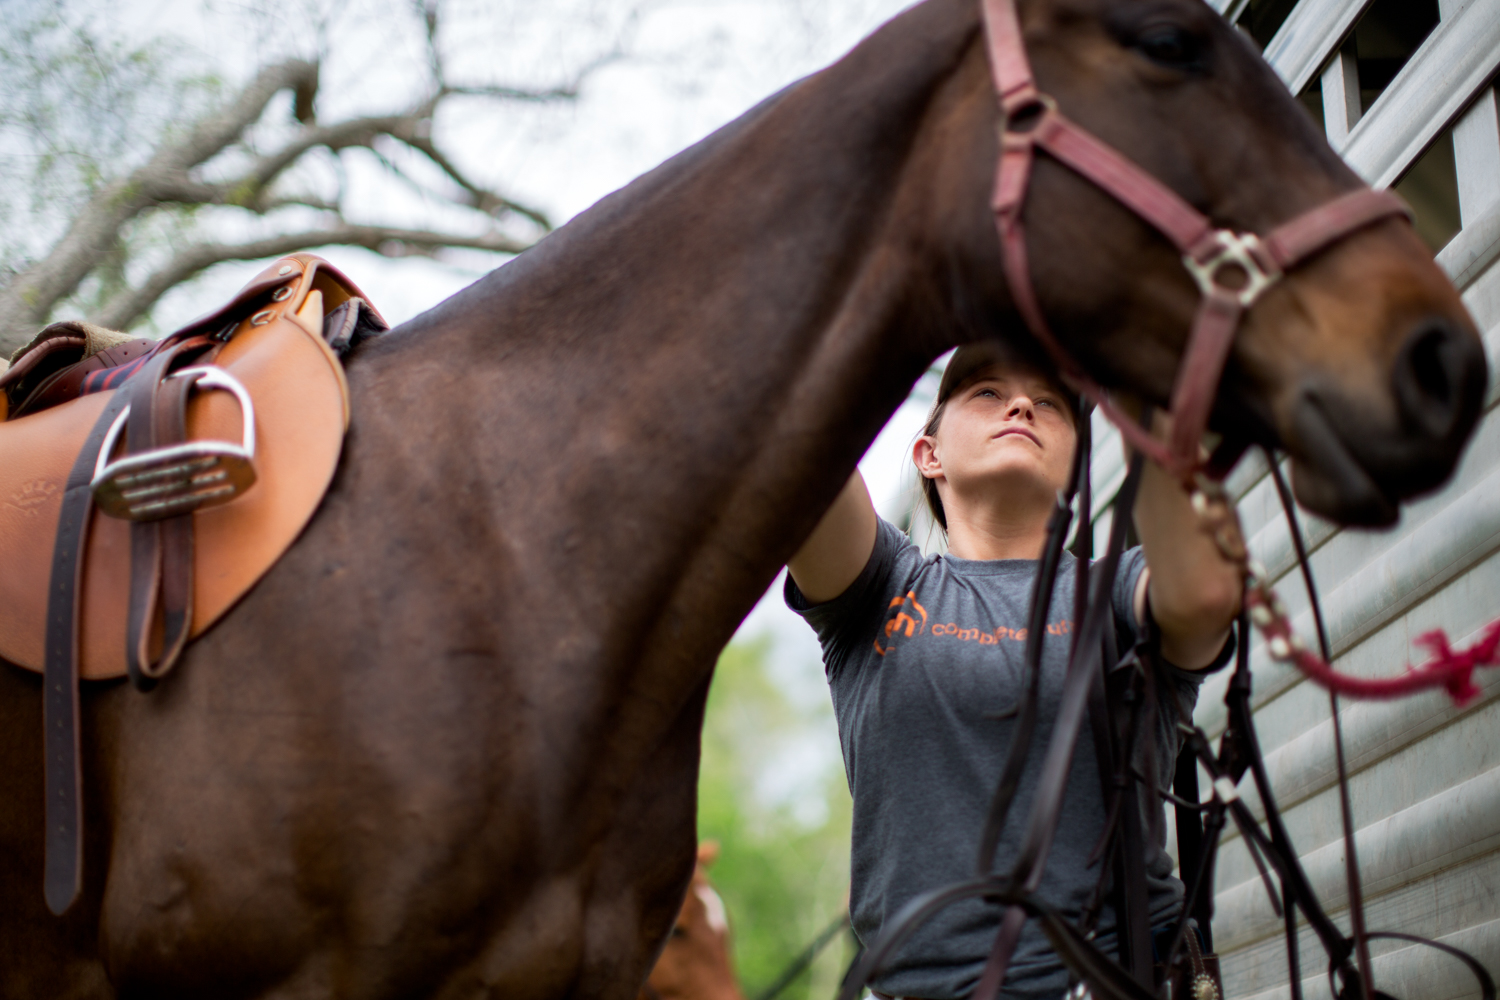 Hudspeth tacks up her horses before a charity game in McFaddin, Texas. Hudsepth and her groom have to prepare anywhere from 8-12 horses per game for herself and her sponsor. A polo game can consist of 4-6 chukkers and players switch horses between every chukker.